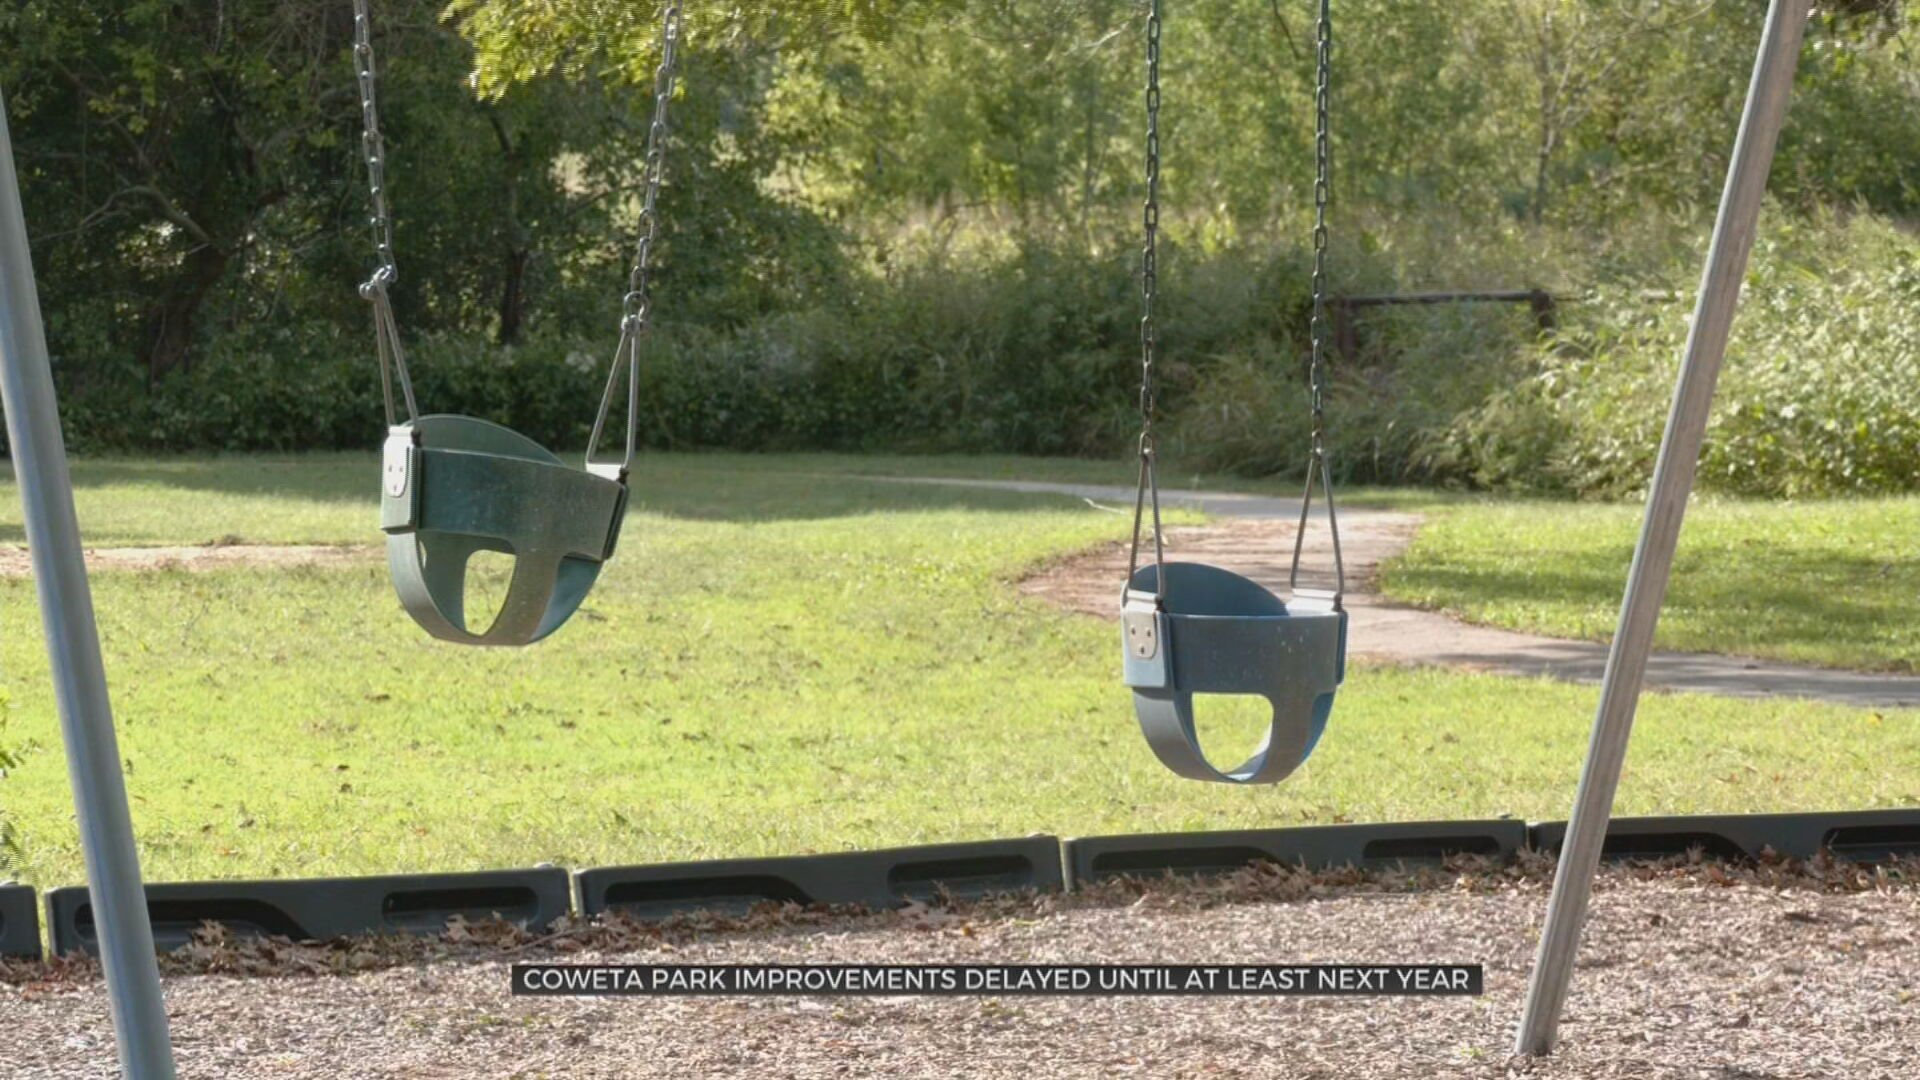 Park Project Pushed Back As Coweta Community Hopes For Change